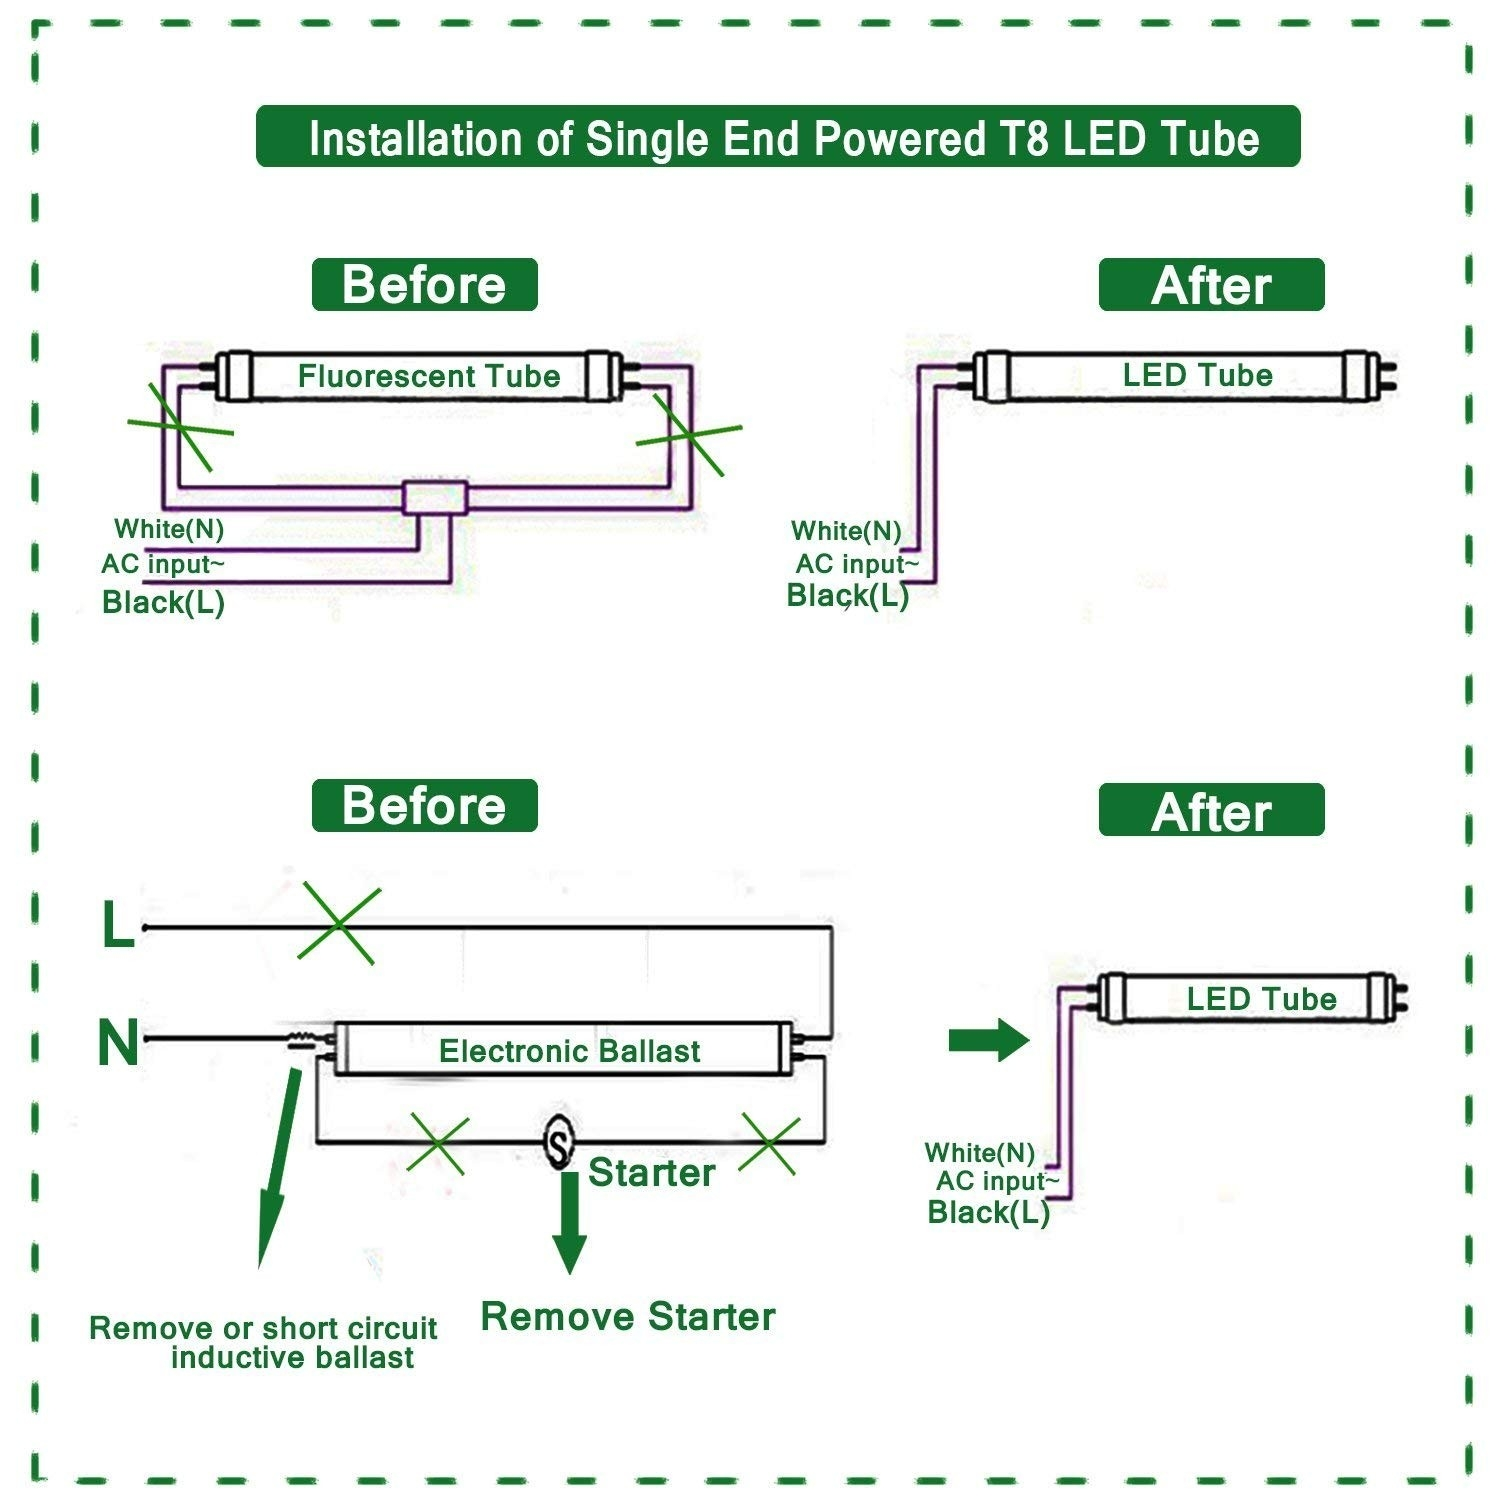 fluorescent to led tube light wiring diagram t8 led tube light wiring diagram | free wiring diagram